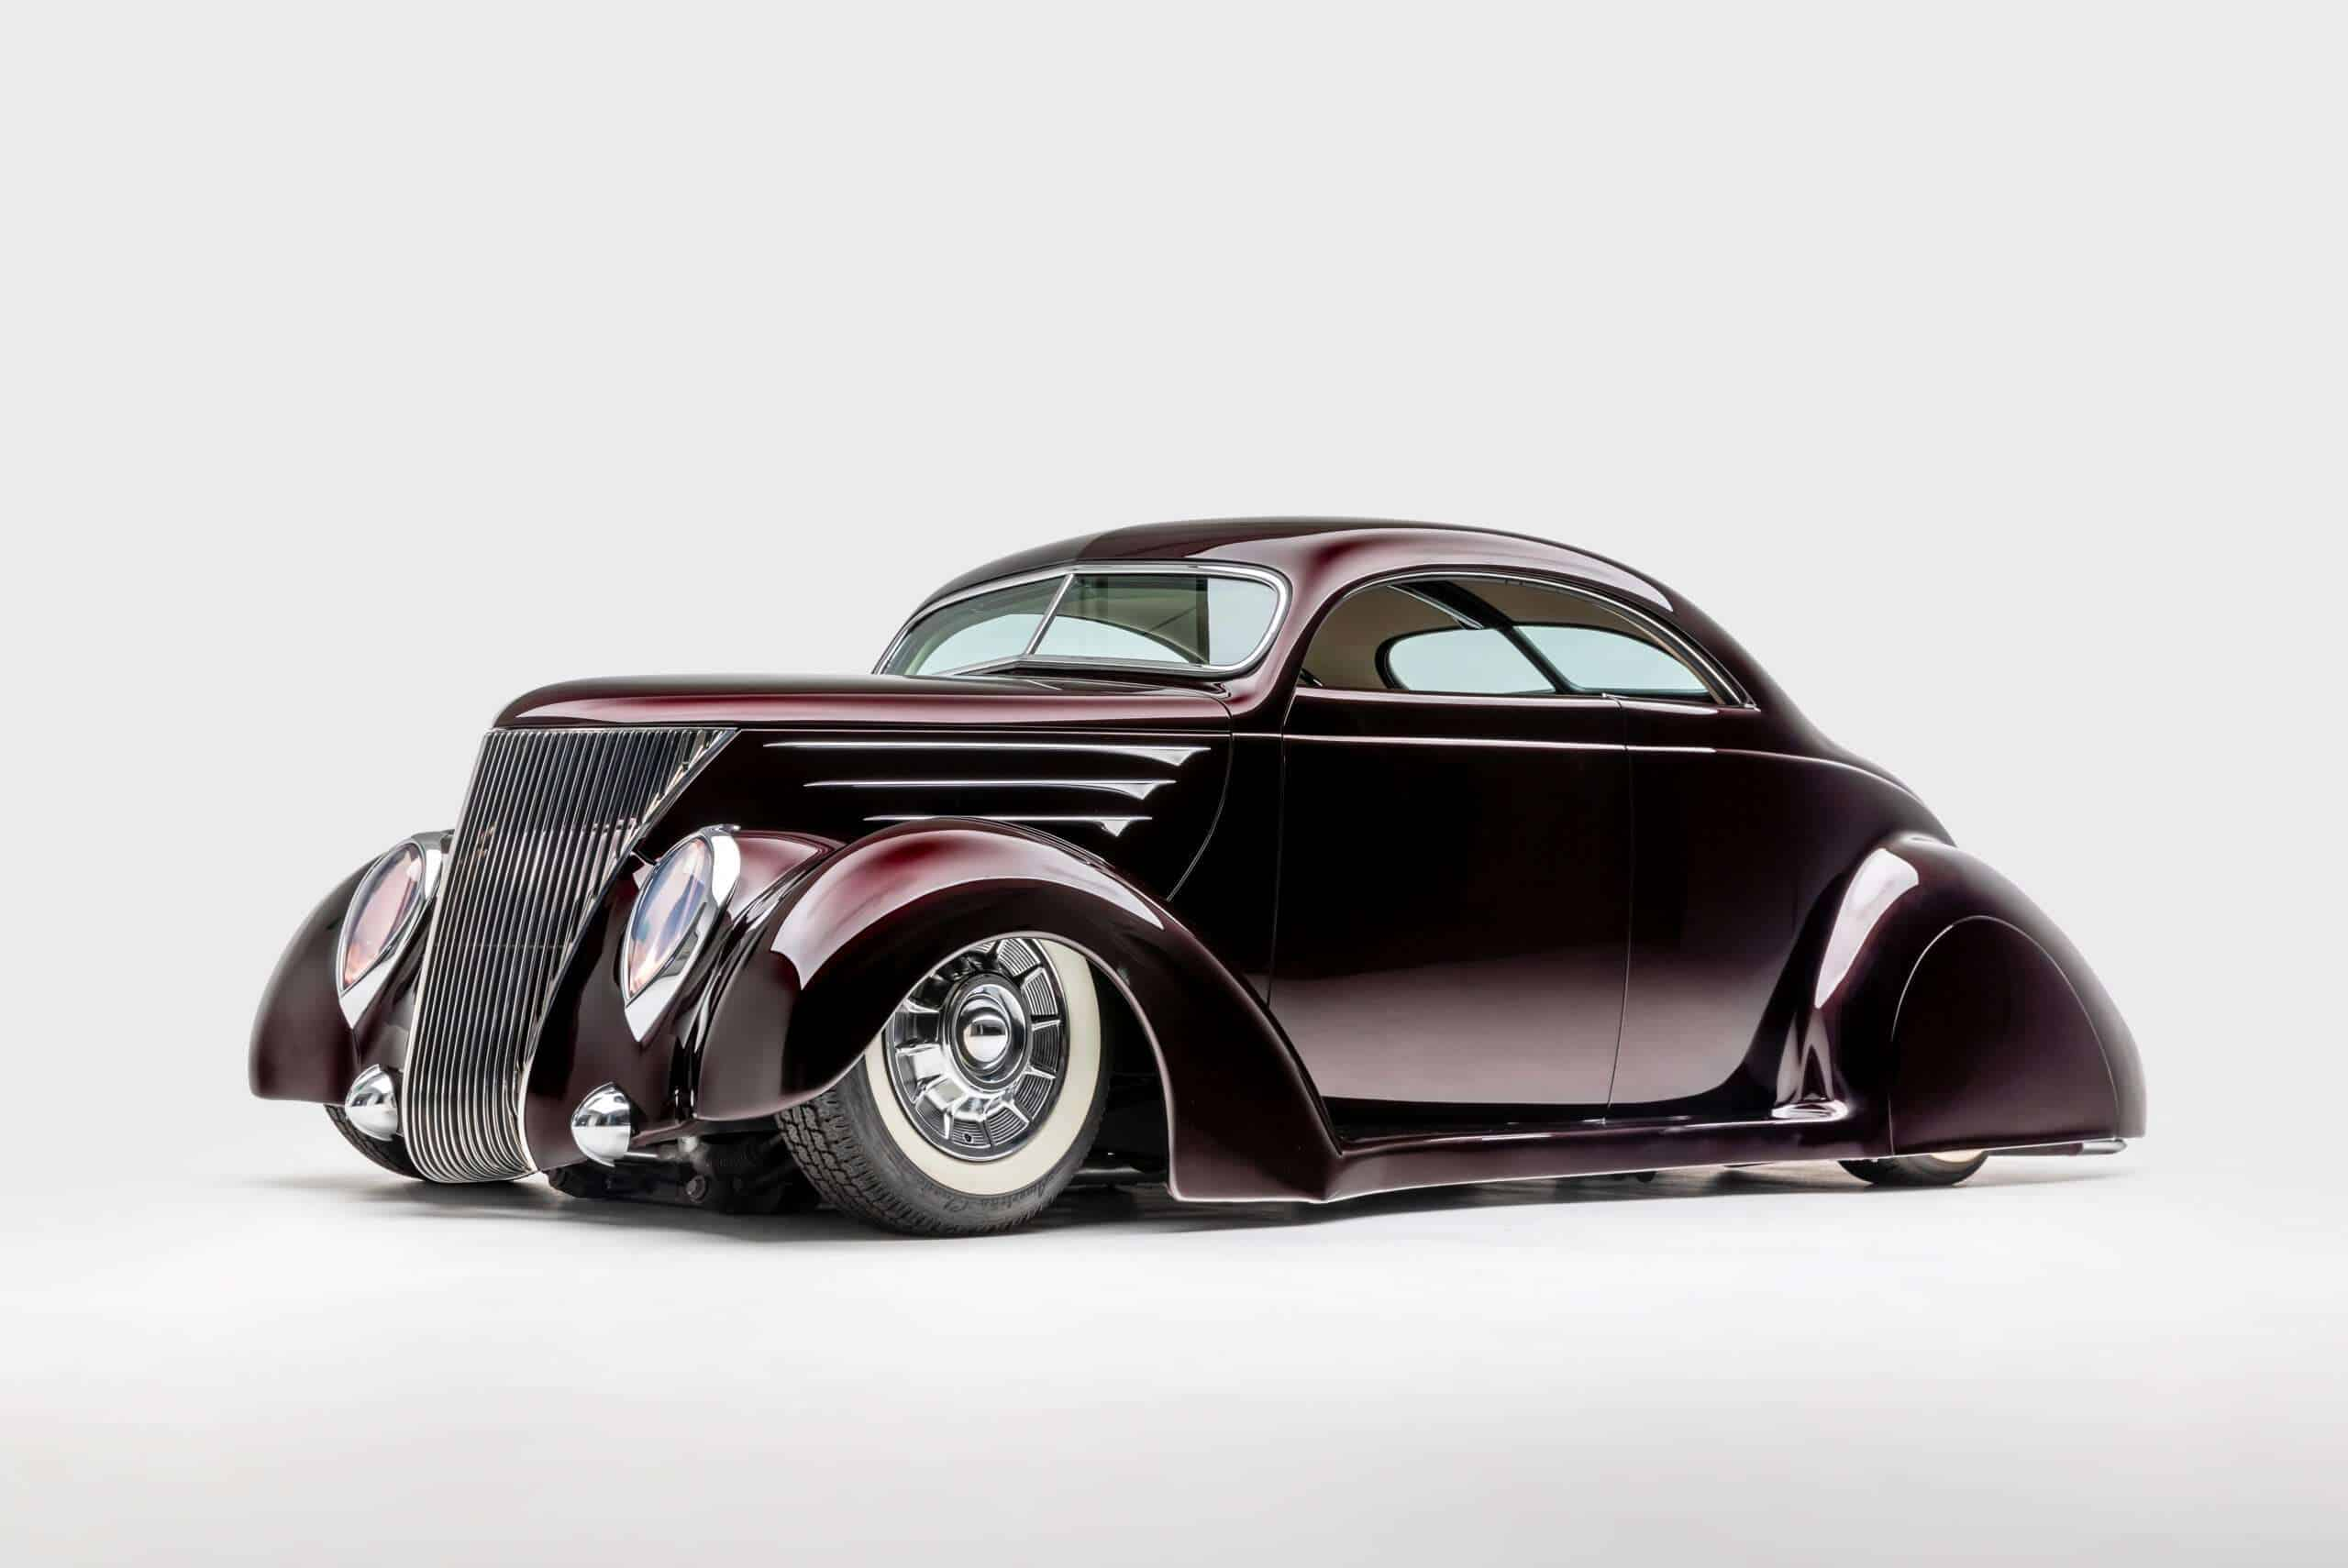 Crimson Ghost (1937 Ford Coupe)